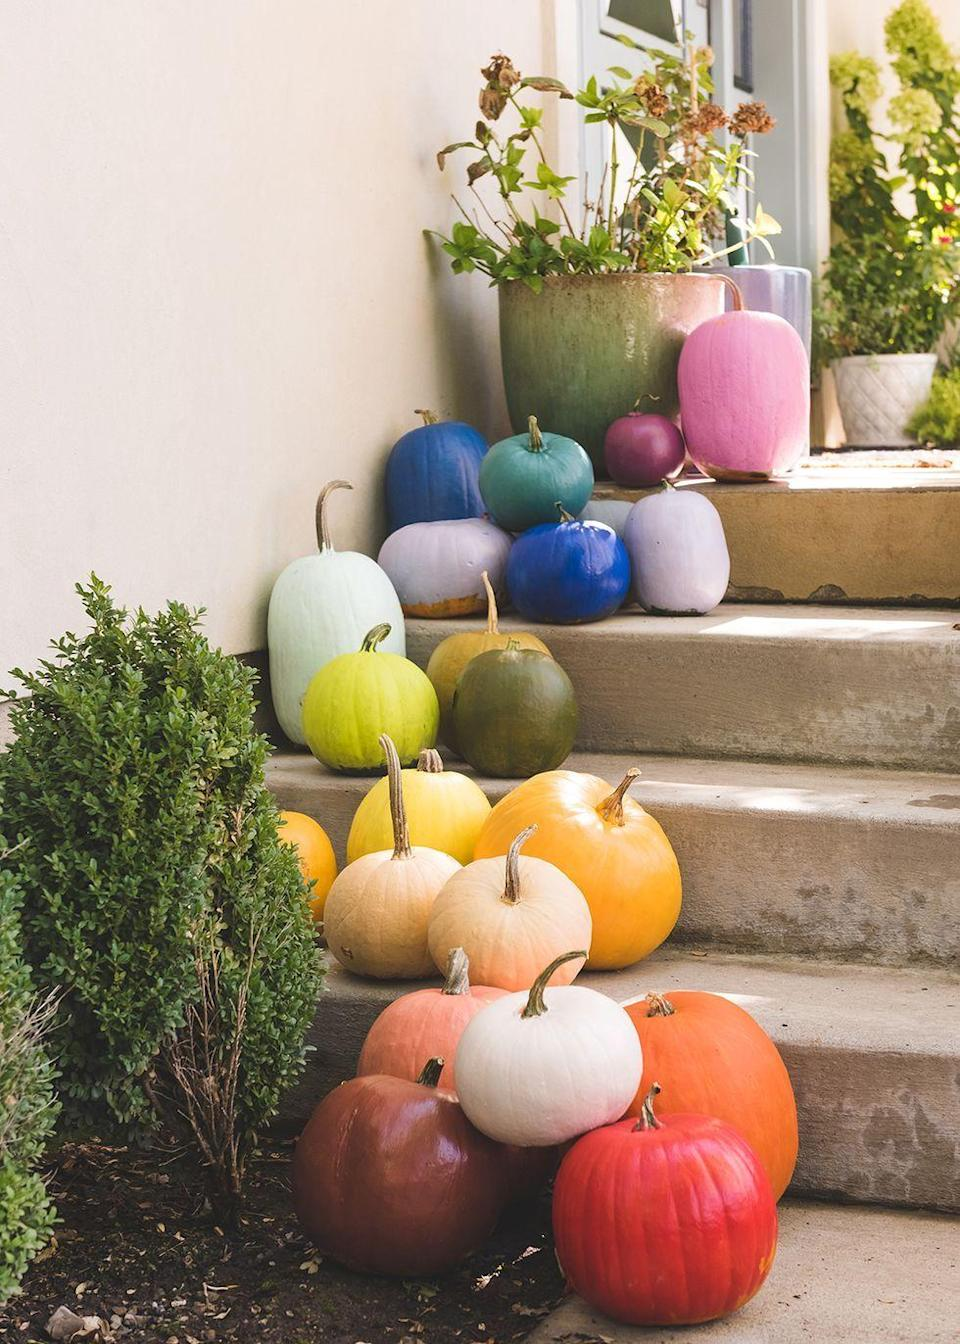 "<p>If you went a little overboard at the pumpkin patch and have a lot of pumpkins to work with, try painting each one a different color to create a chic rainbow effect. </p><p><em><a href=""https://thehousethatlarsbuilt.com/2018/10/diy-rainbow-pumpkins.html/"" rel=""nofollow noopener"" target=""_blank"" data-ylk=""slk:Get the tutorial at The House That Lars Built »"" class=""link rapid-noclick-resp"">Get the tutorial at The House That Lars Built »</a></em></p>"